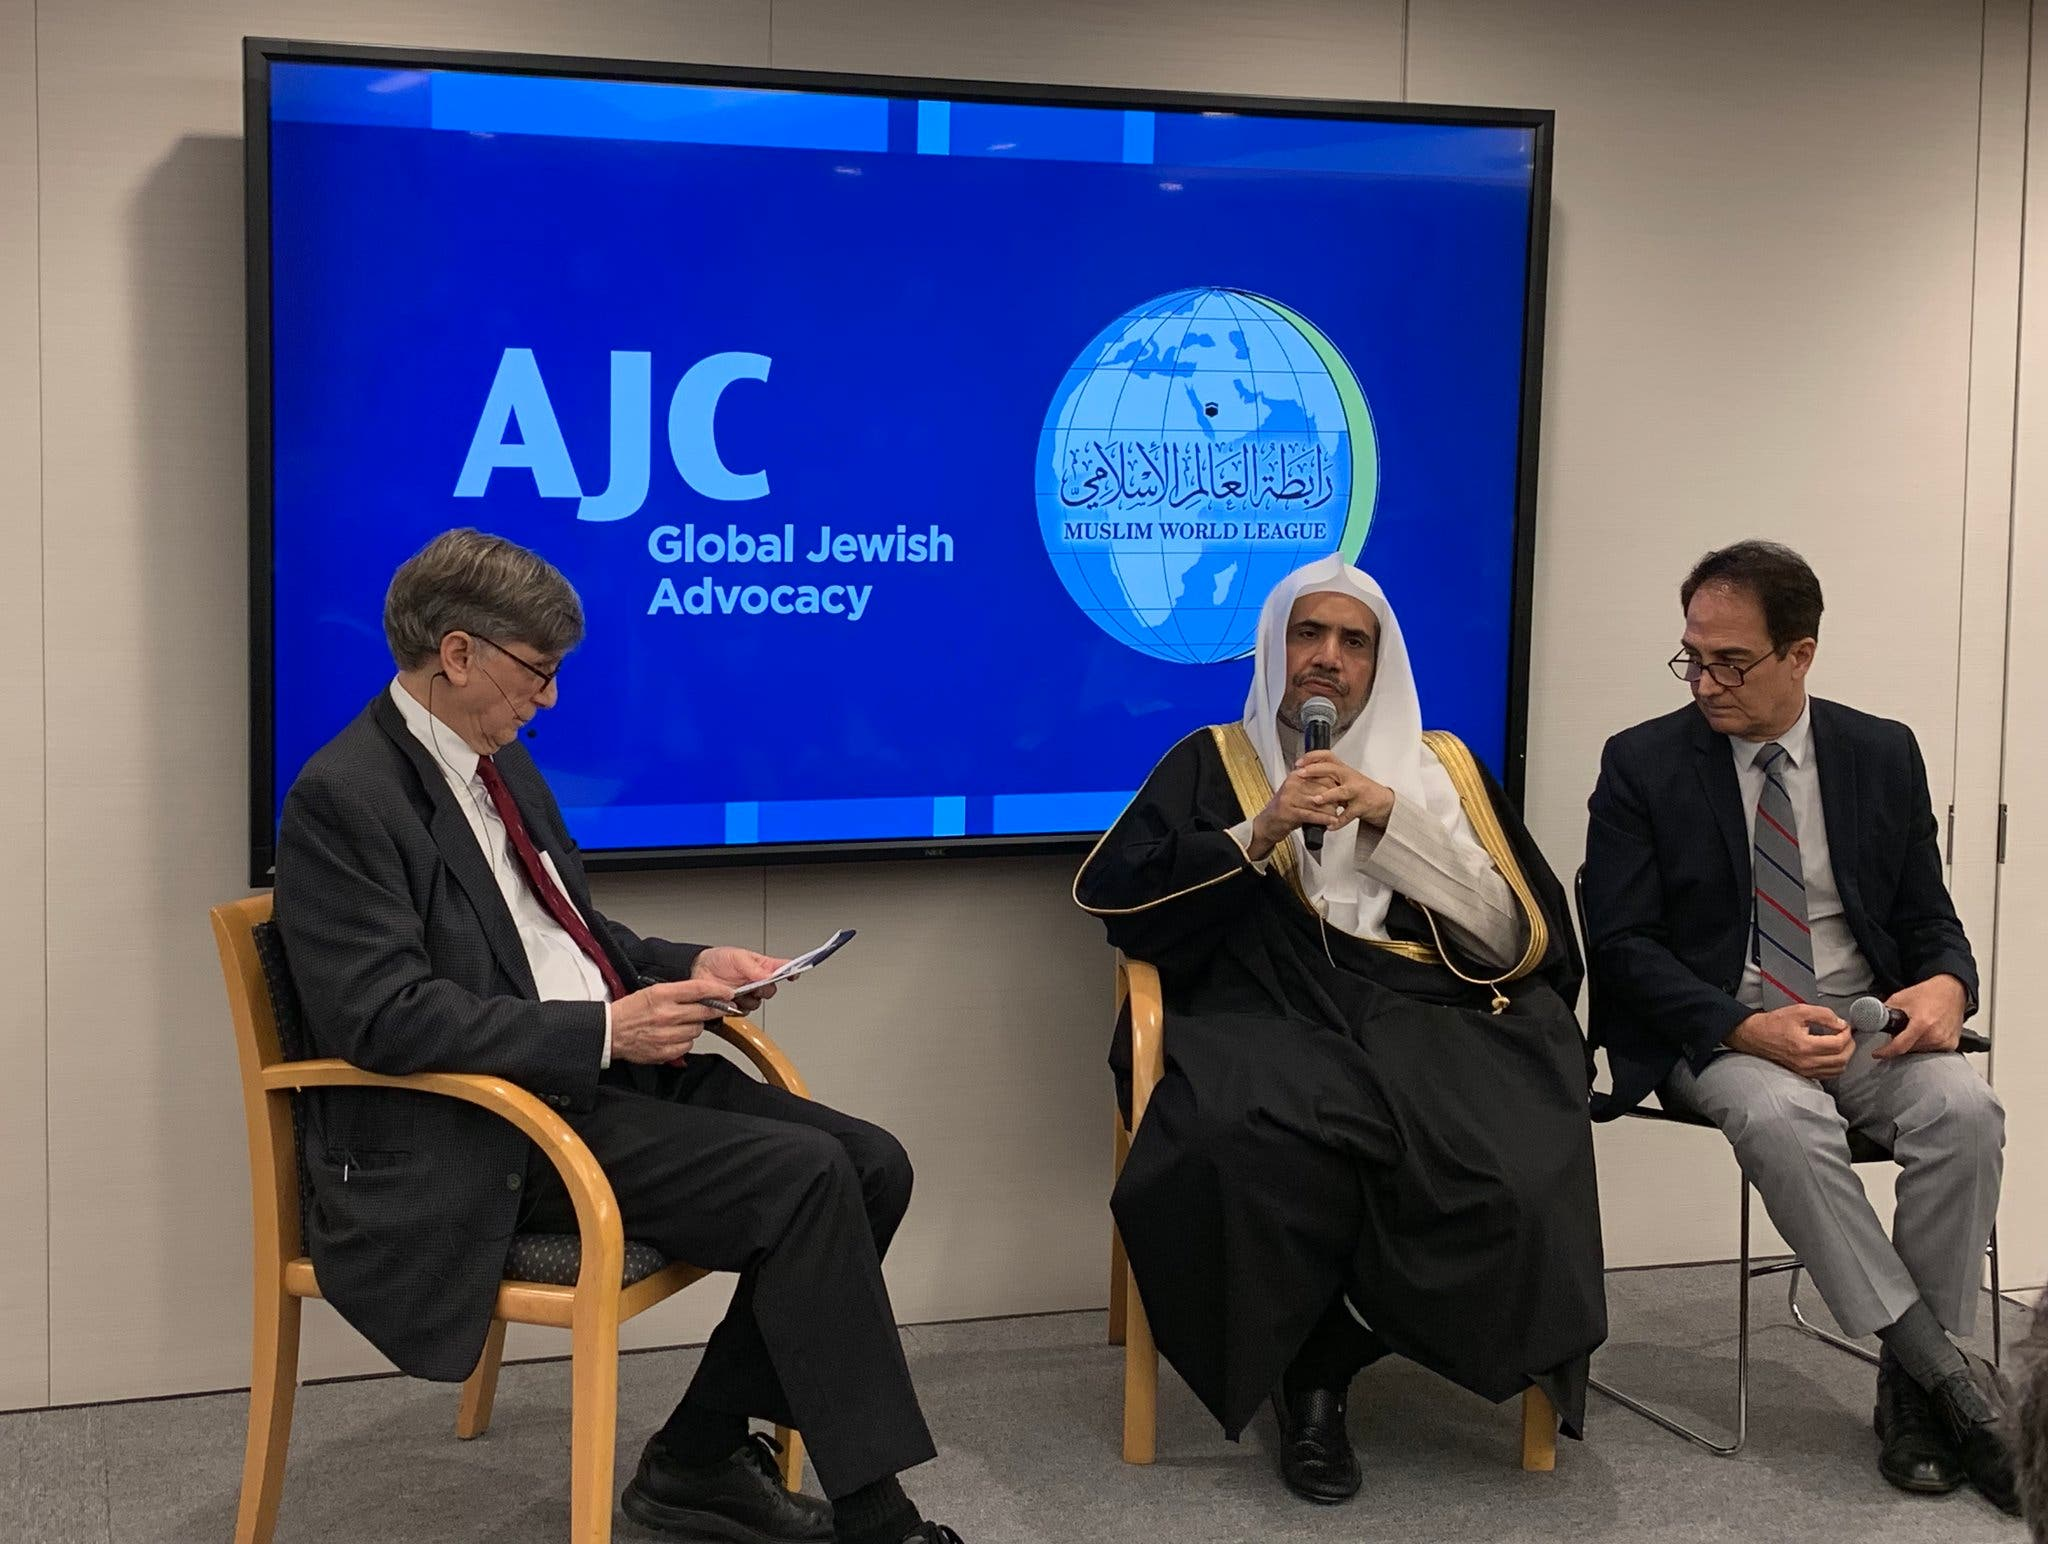 Al-Issa during the signing of a memorandum of understanding with AJC codifying the commitment of the two global institutions to further Muslim-Jewish understanding. (Photo courtesy: MWL)